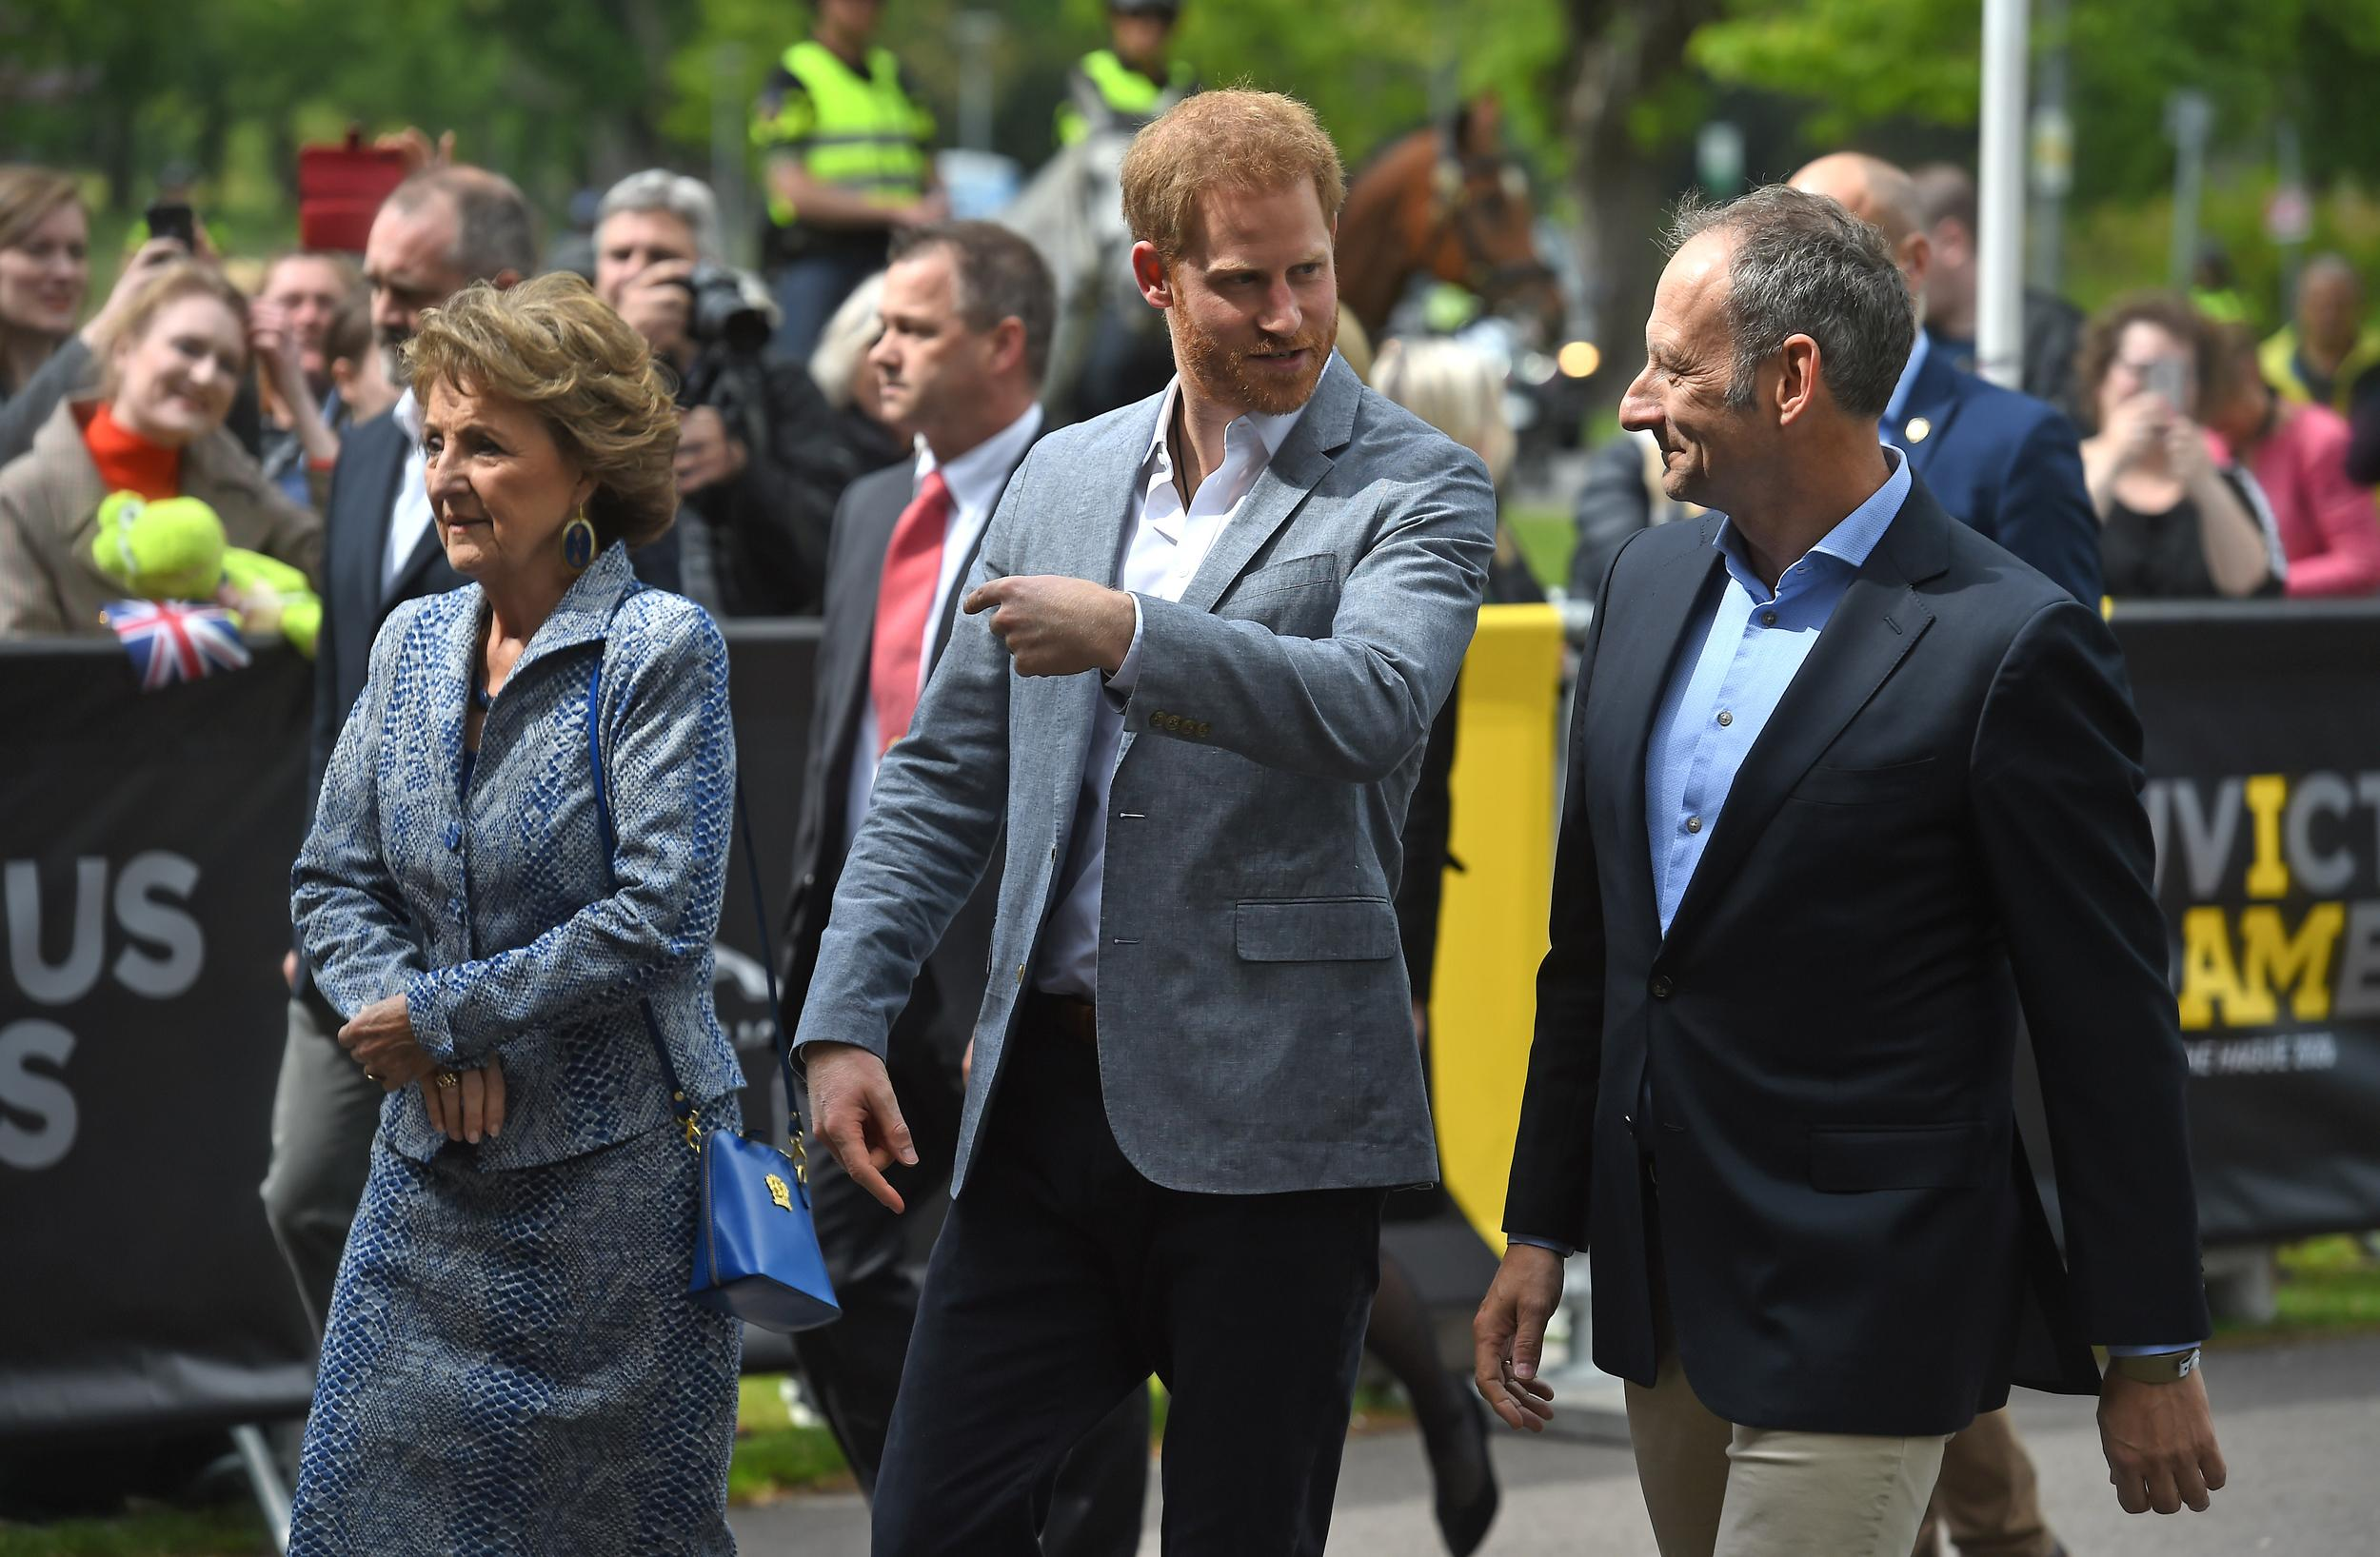 The Duke of Sussex (centre) arriving for one day visit to Amsterdam in the Netherlands. (Photo by Kirsty O'Connor/PA Images via Getty Images)